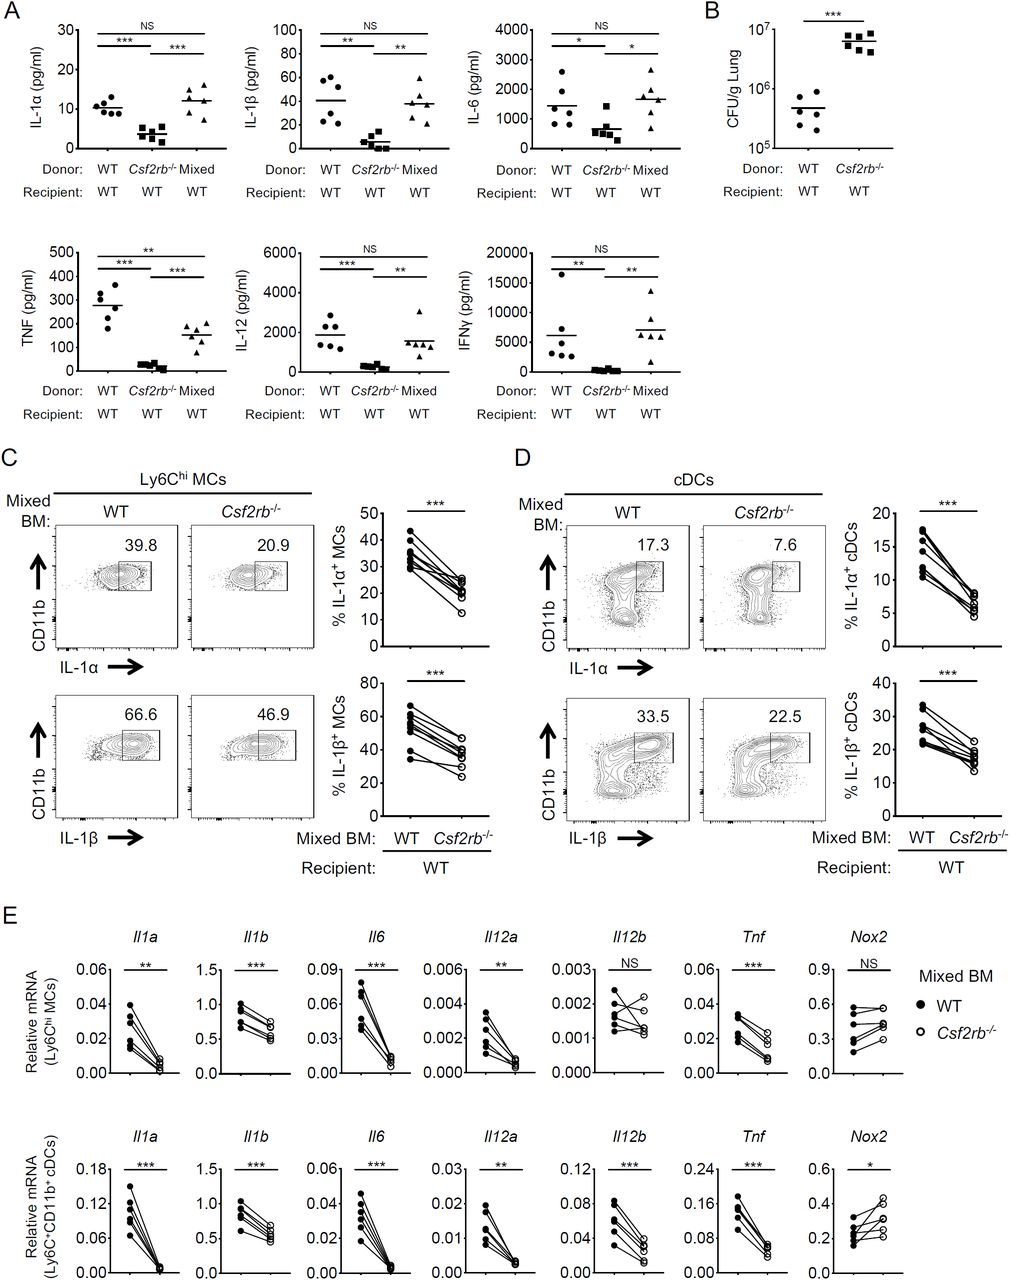 Cell-intrinsic GM-CSF receptor signaling is required for inflammatory cytokine production by myeloid cells WT→WT, Csf2rb -/- →WT, and 50% WT/50% Csf2rb -/- →WT BM chimeras intranasally infected with L . p . (A) IL-1α, IL-1β, IL-6, TNF, and IL-12 levels in the BAL at 24 hpi and IFNγ at 48 hpi. (B) L . p . CFUs in the lungs of chimeric WT→WT and Csf2rb -/- →WT mice at 72 hpi. (C and D) Representative flow cytometric plots and graphs depicting the frequency of IL-1α+ or IL-1β+ WT or Csf2rb -/- MCs (C) and cDCs (D) from the lungs of 50% WT/50% Csf2rb -/- →WT mixed BM chimeras at 24 hpi. Each line represents the paired values of WT and Csf2rb -/- cells from a given mouse. (E) Il1a, Il1b, Il6, Il12a, Il12b, Tnf , and Nox2 transcript levels in Ly6C hi MCs and Ly6C + CD11b + cDCs isolated from the lungs of 50% WT/50% Csf2rb -/- →WT mixed BM chimeras at 24 hpi, as quantified by qRT-PCR. Each line represents the paired values of WT and Csf2rb -/- cells from a given mouse. Data shown are the pooled results of two (A, B, and E) or three (C and D) independent experiments with 3 mice per experiment. NS, not significant; *p